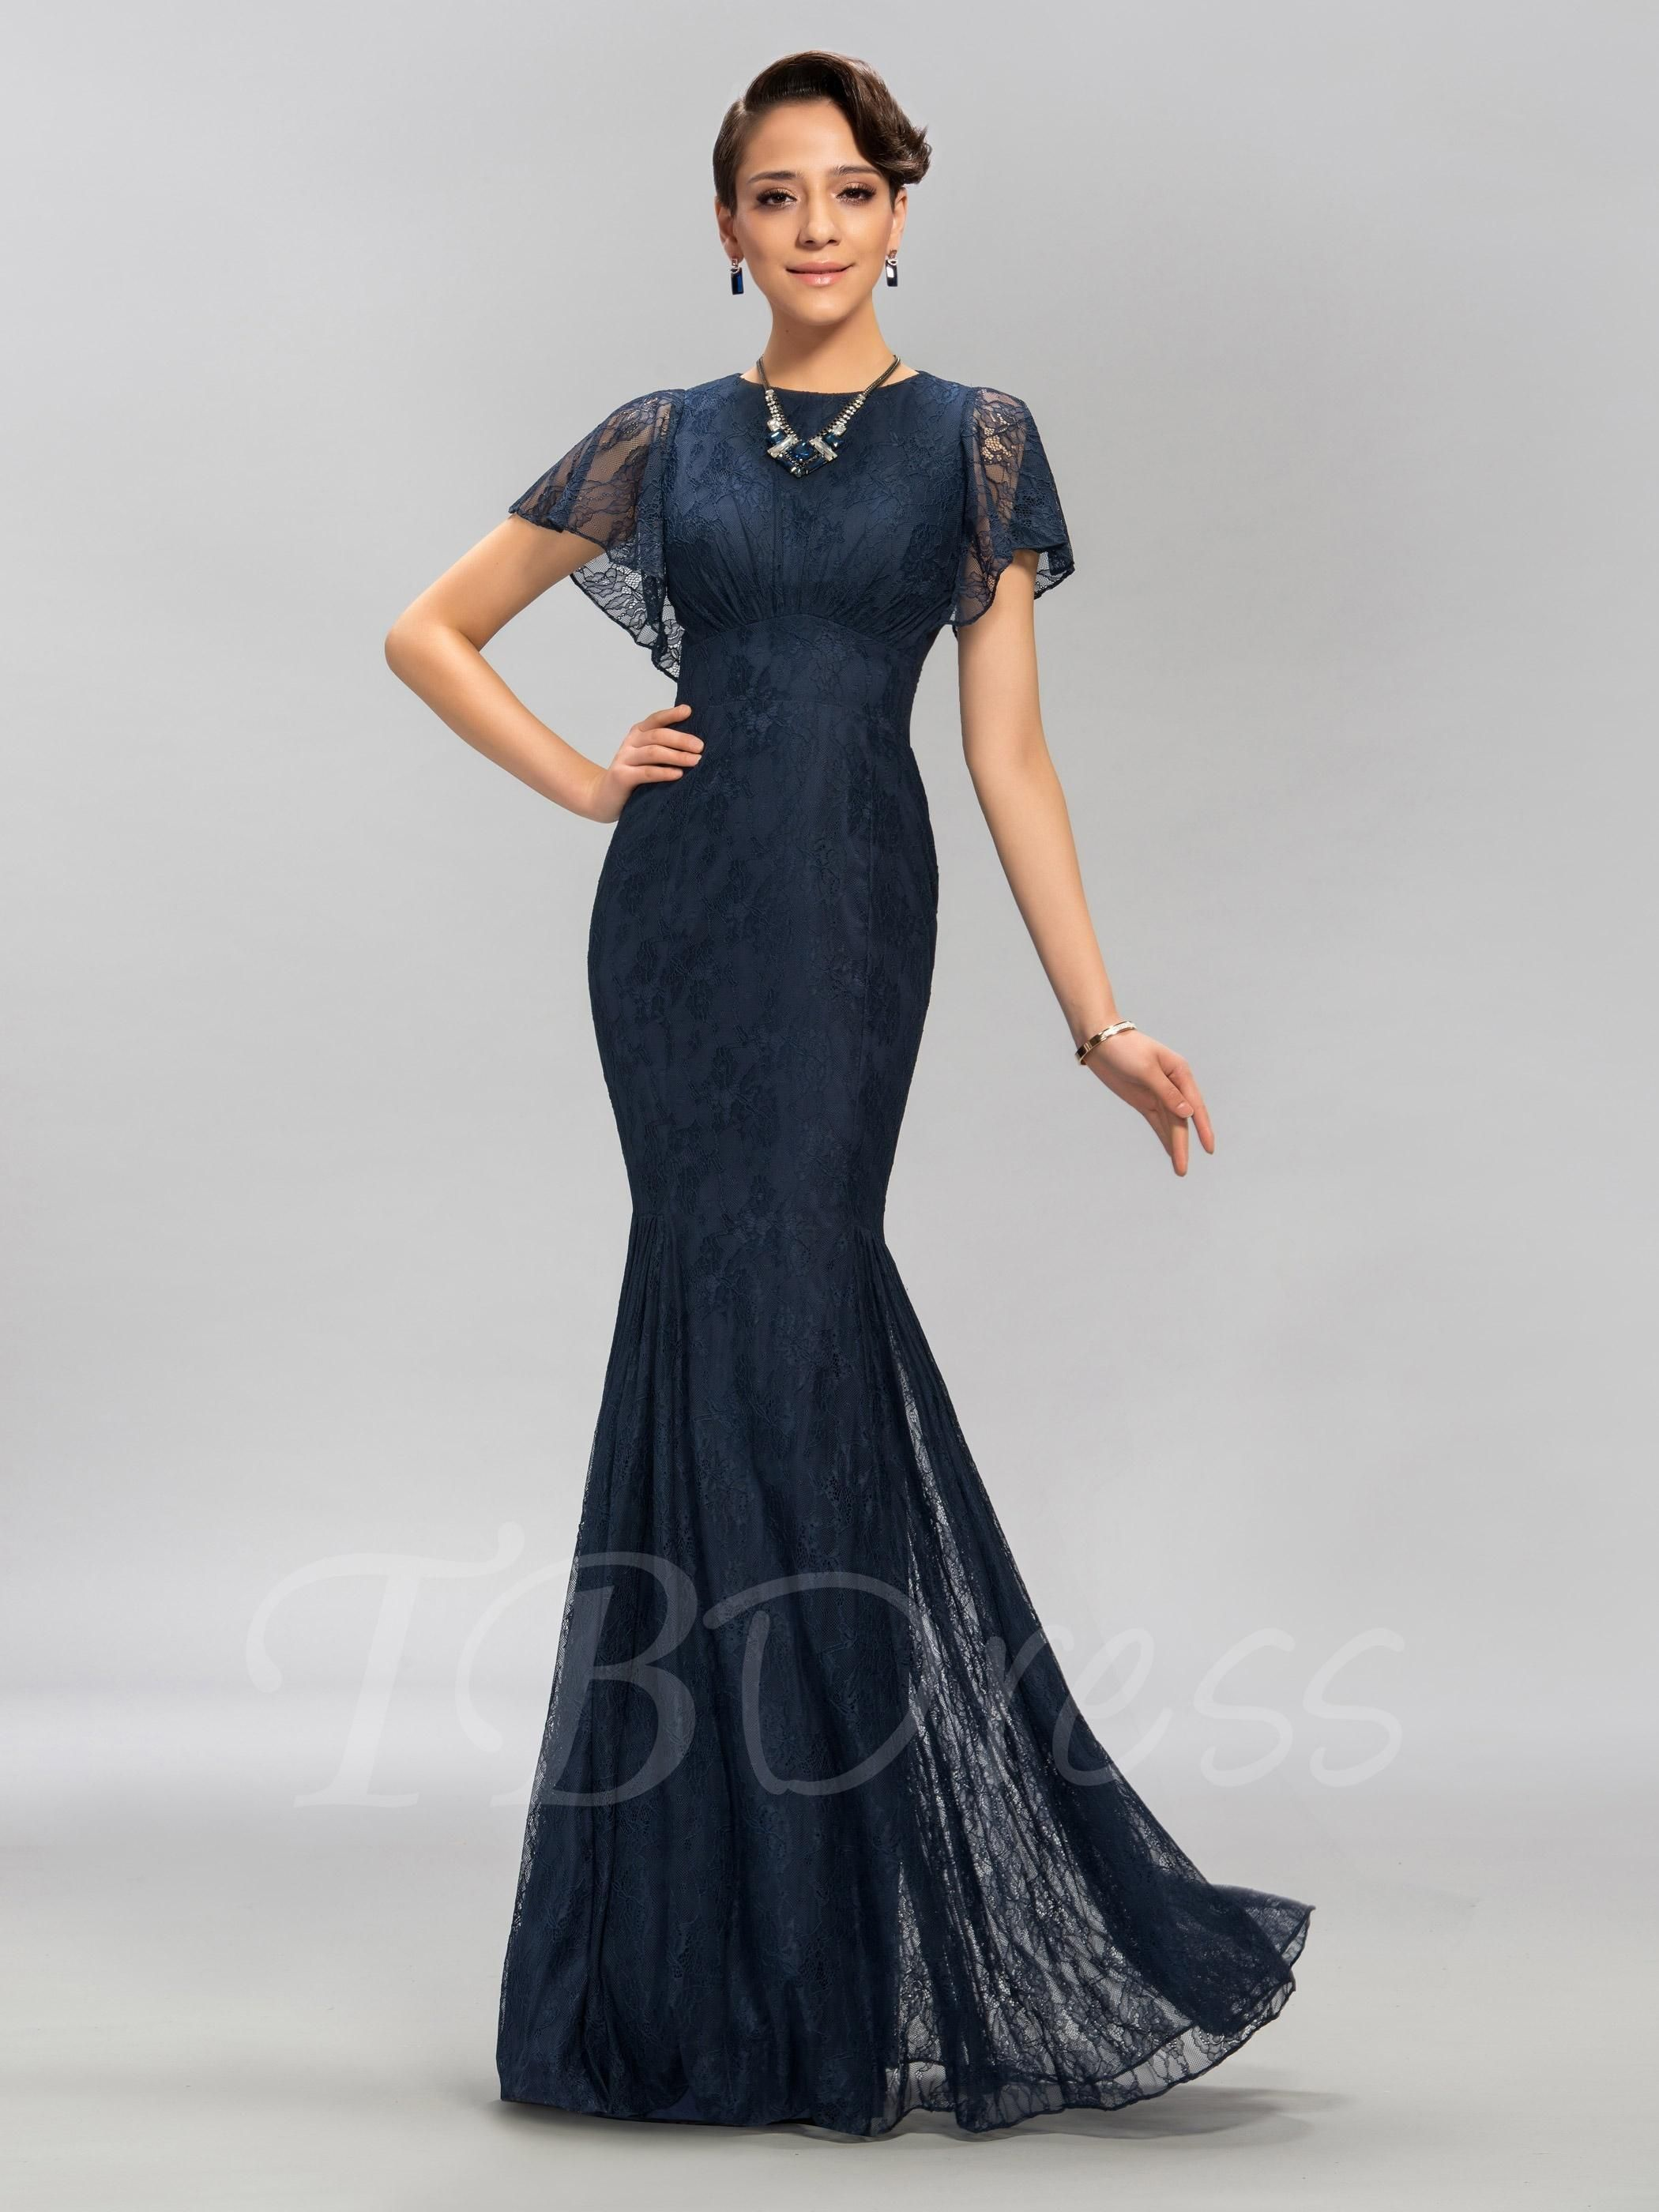 Tbdress tbdress lace scoop neck mermaid long evening dress